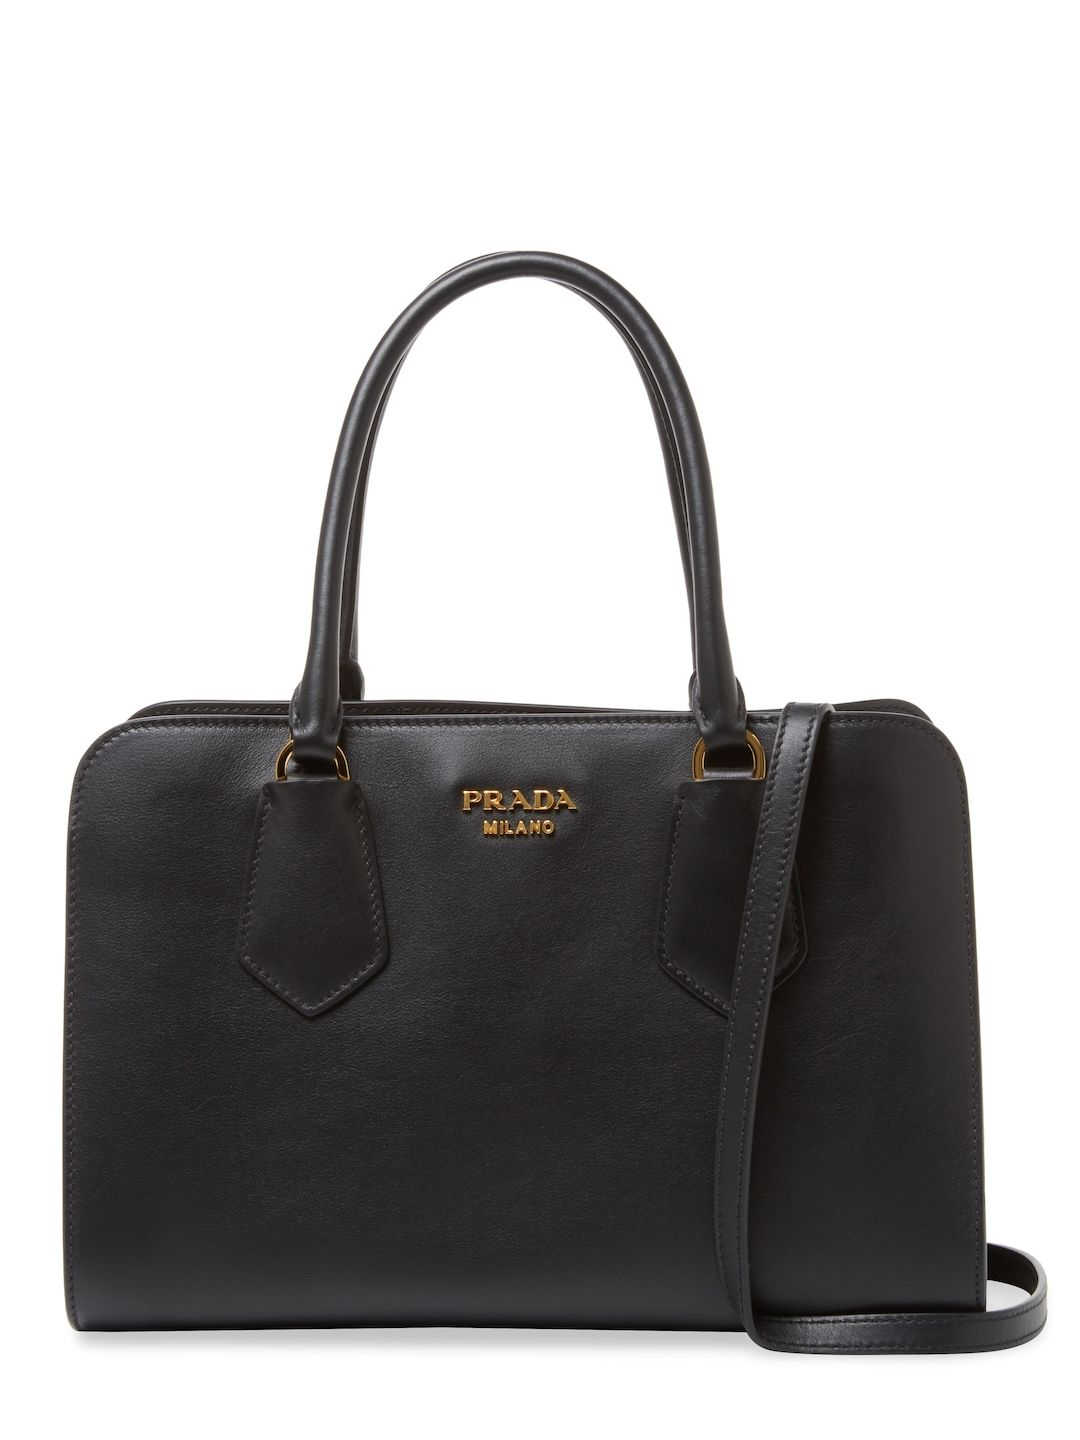 0210ea383e70d7 PRADA WOMEN'S SMALL SQUARE LEATHER TOTE - BLACK. #prada #bags #shoulder bags  #hand bags #leather #tote #lining #